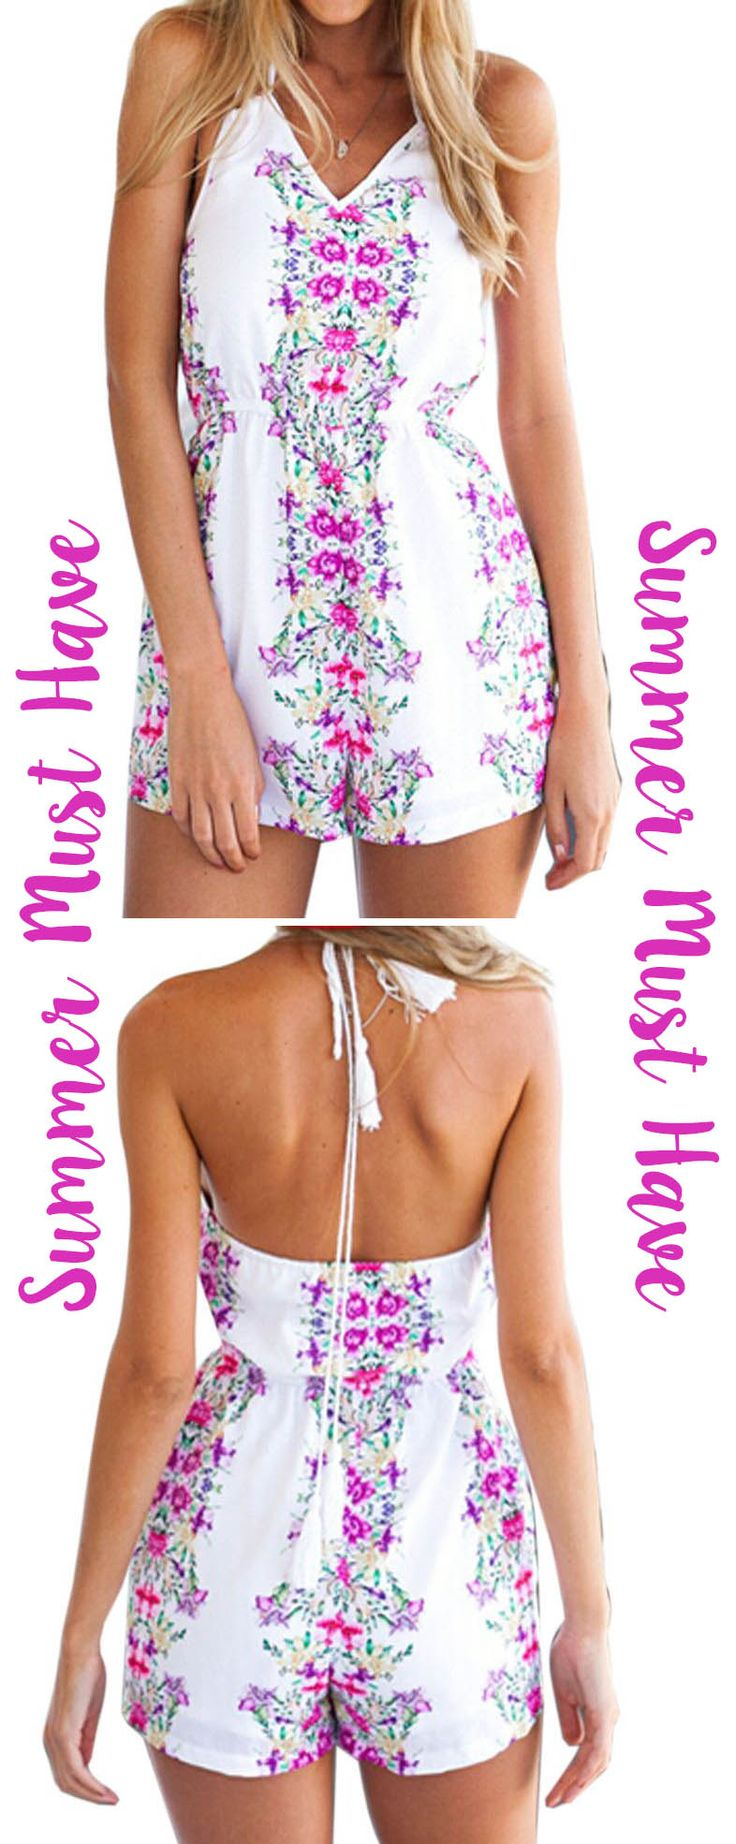 Rompers! A Summer Must-Have Fashion!